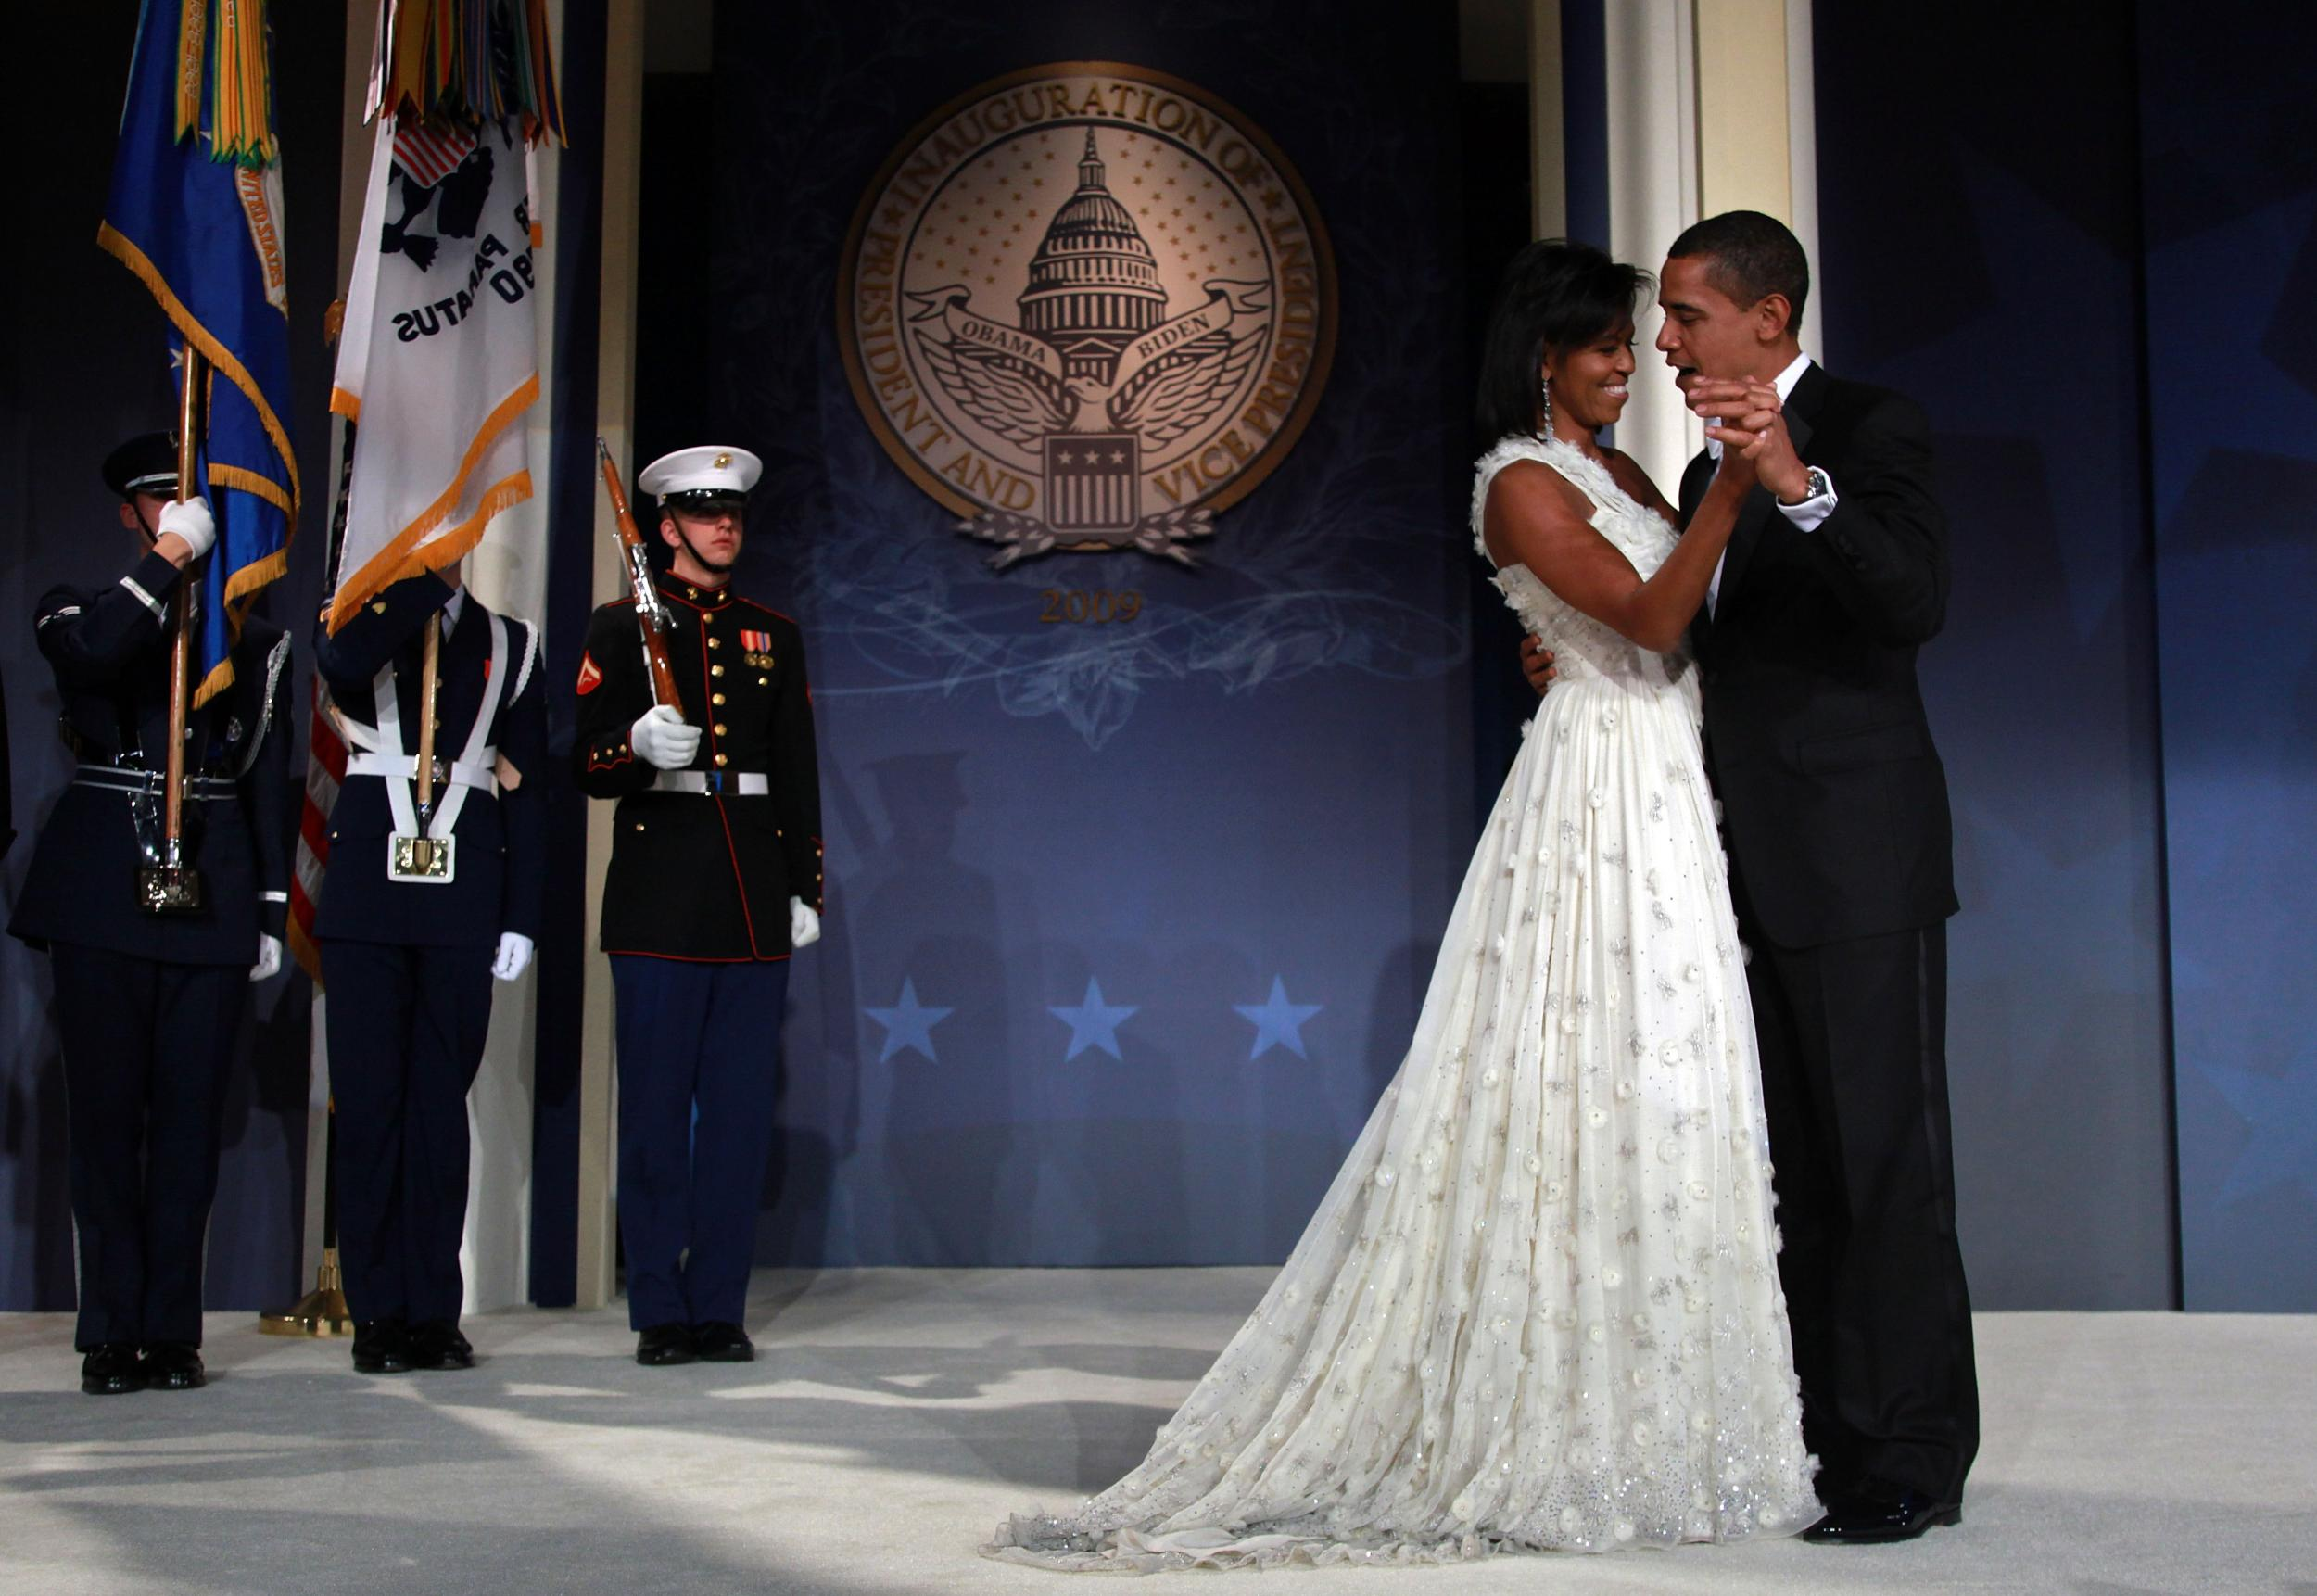 11 - Michelle Obama's Inaugural Gown, Jason Wu, 2009